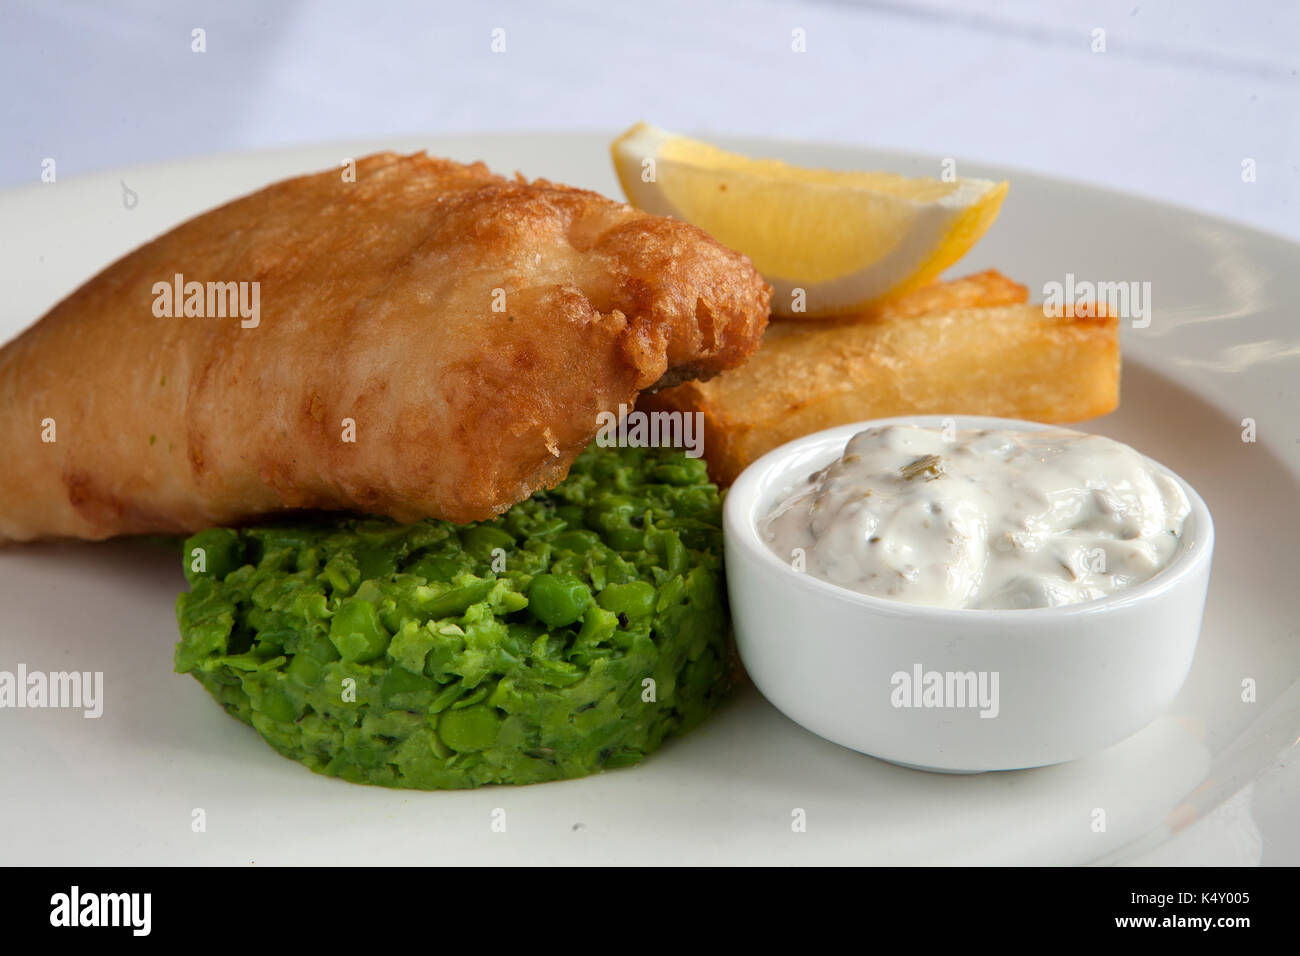 tartar sauce for fish and chips